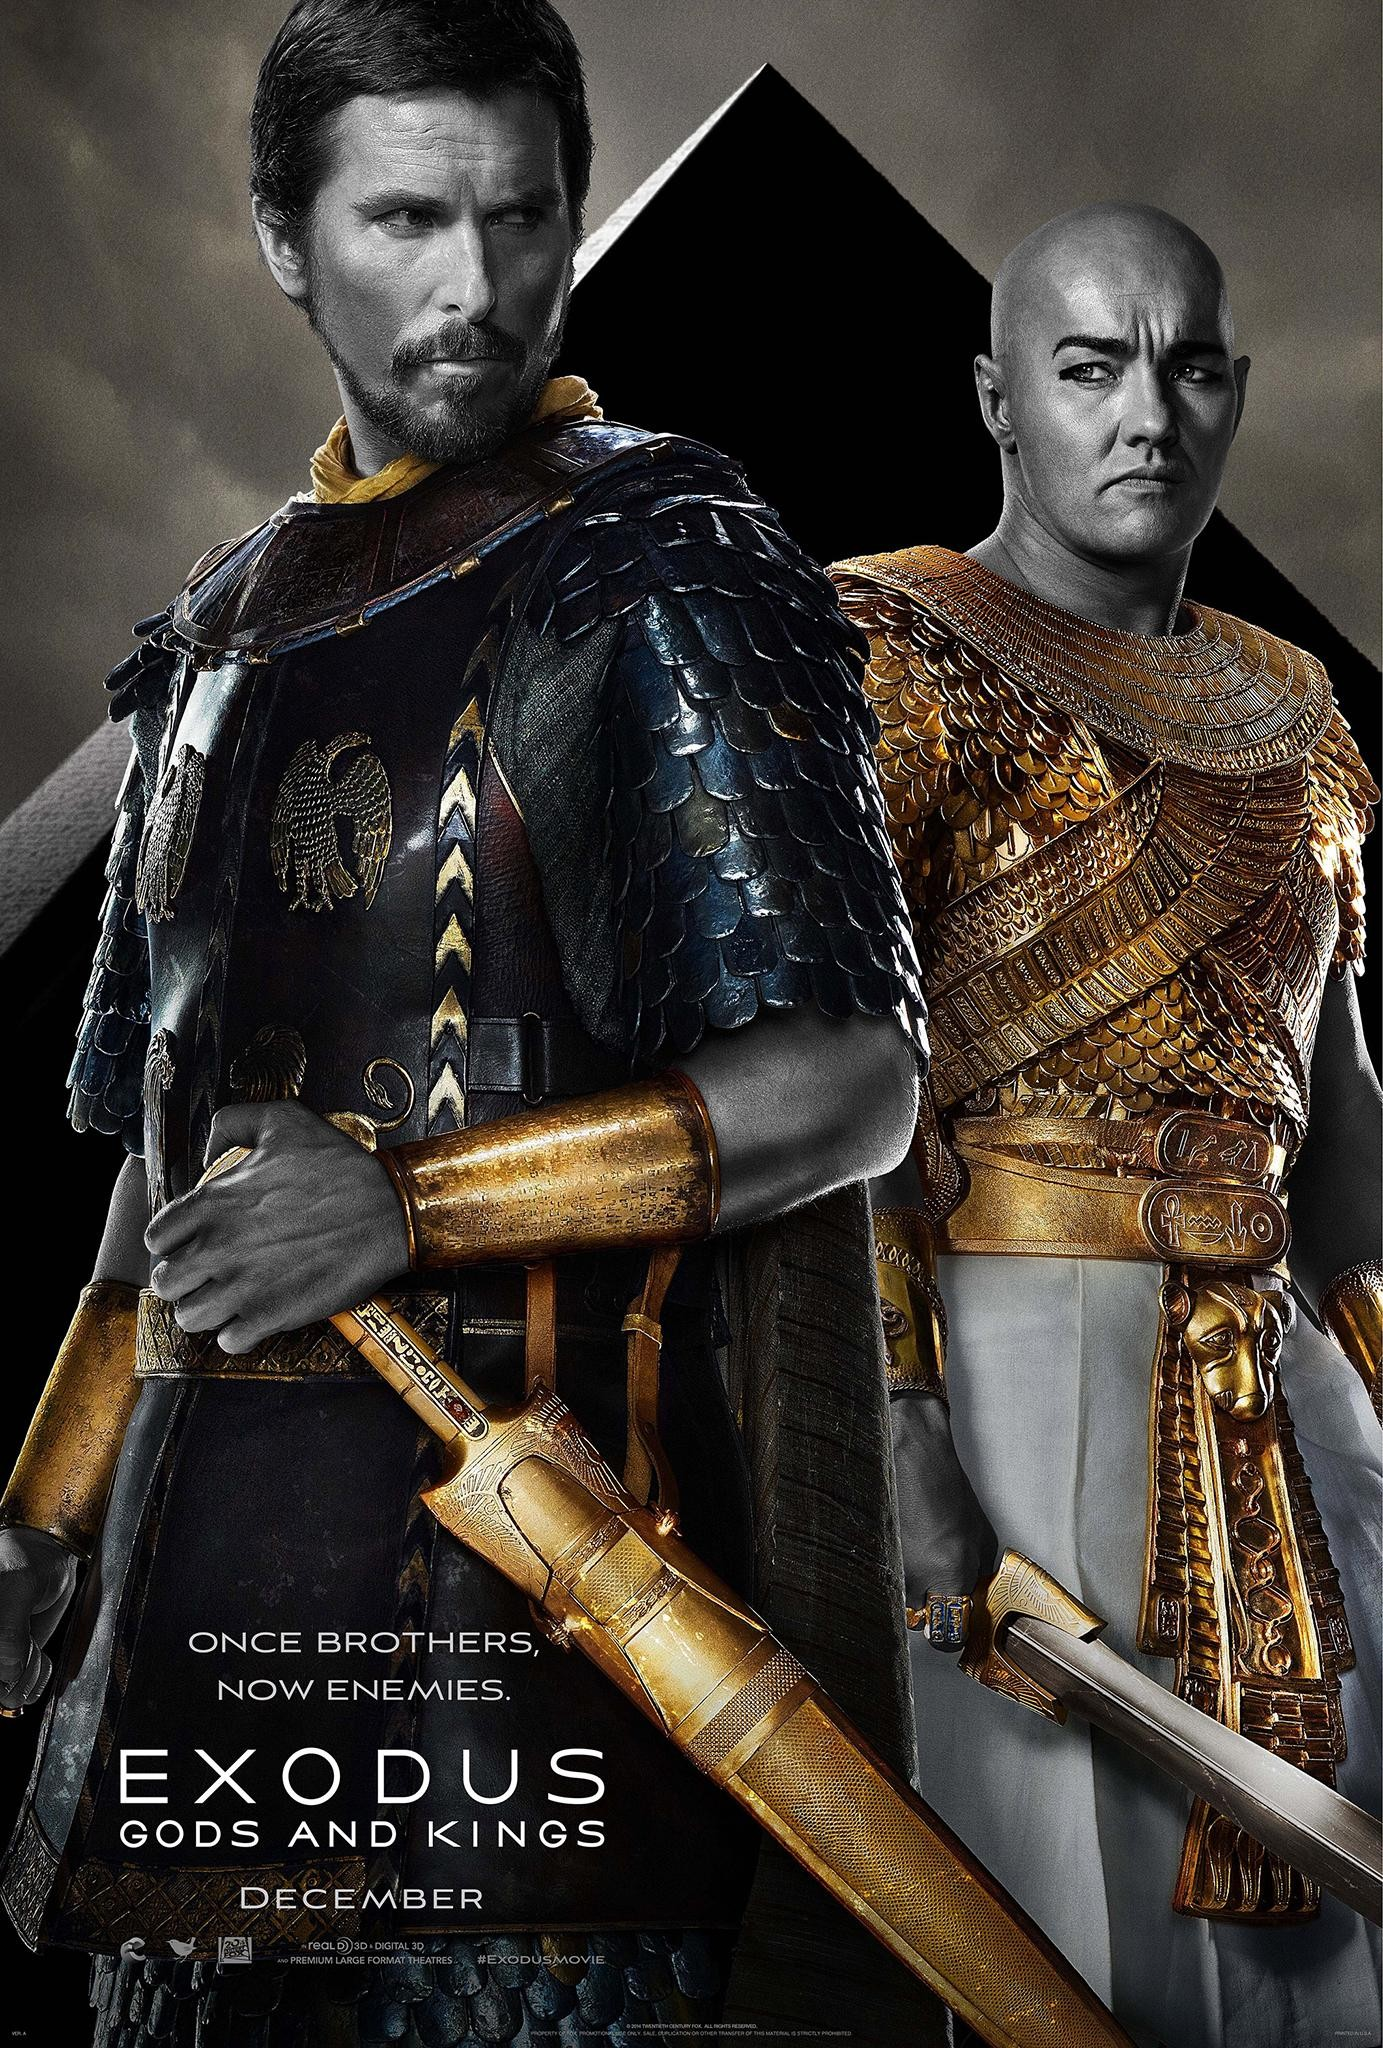 Christian Bale Gets Biblical in 'Exodus: Gods and Kings' Posters and New Trailer